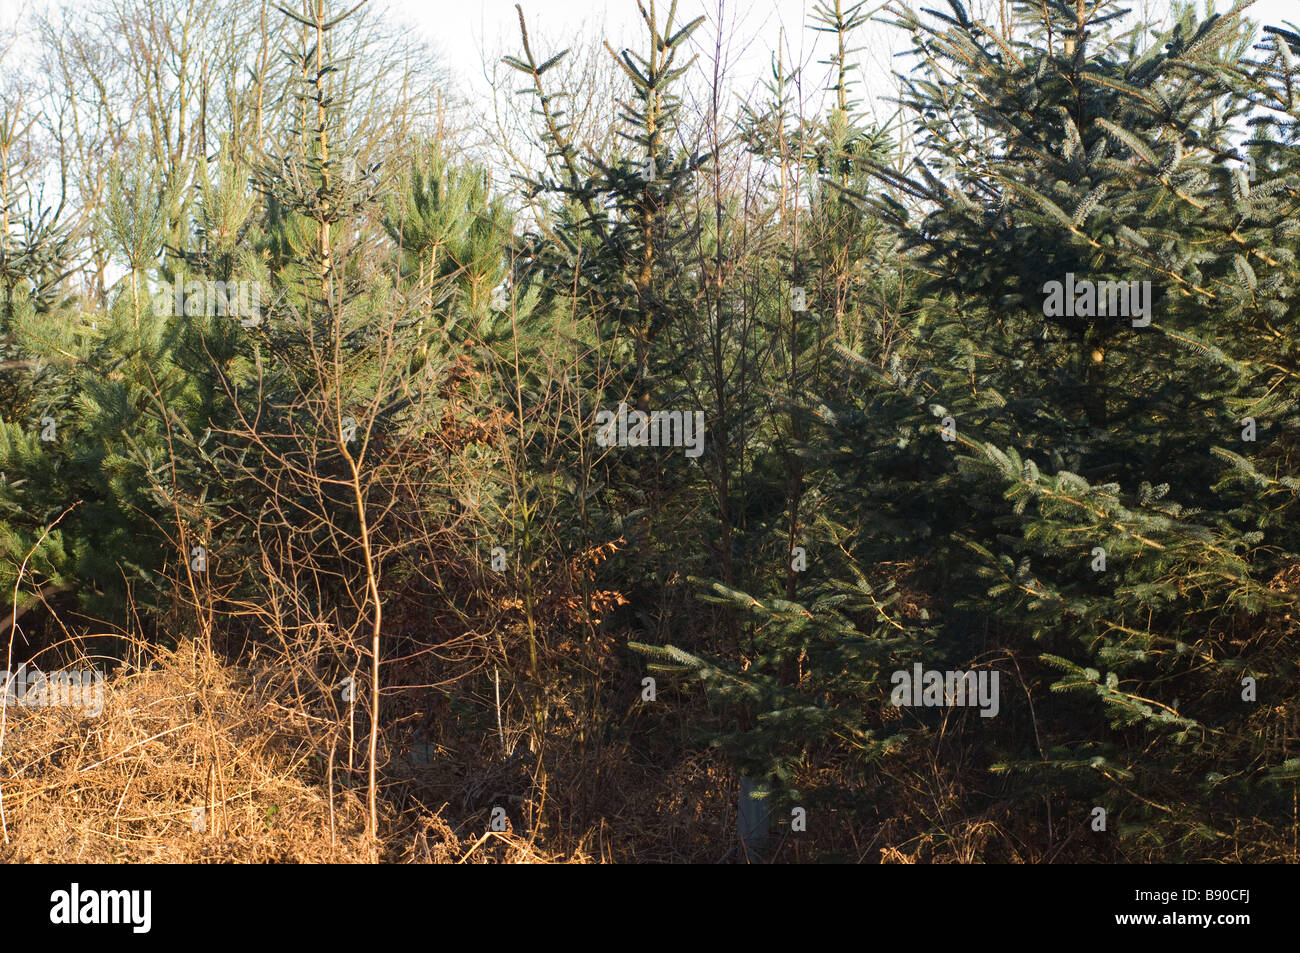 Young sitka spruce and corsican pine in softwood forestry plantation, North Yorkshire, UK - Stock Image